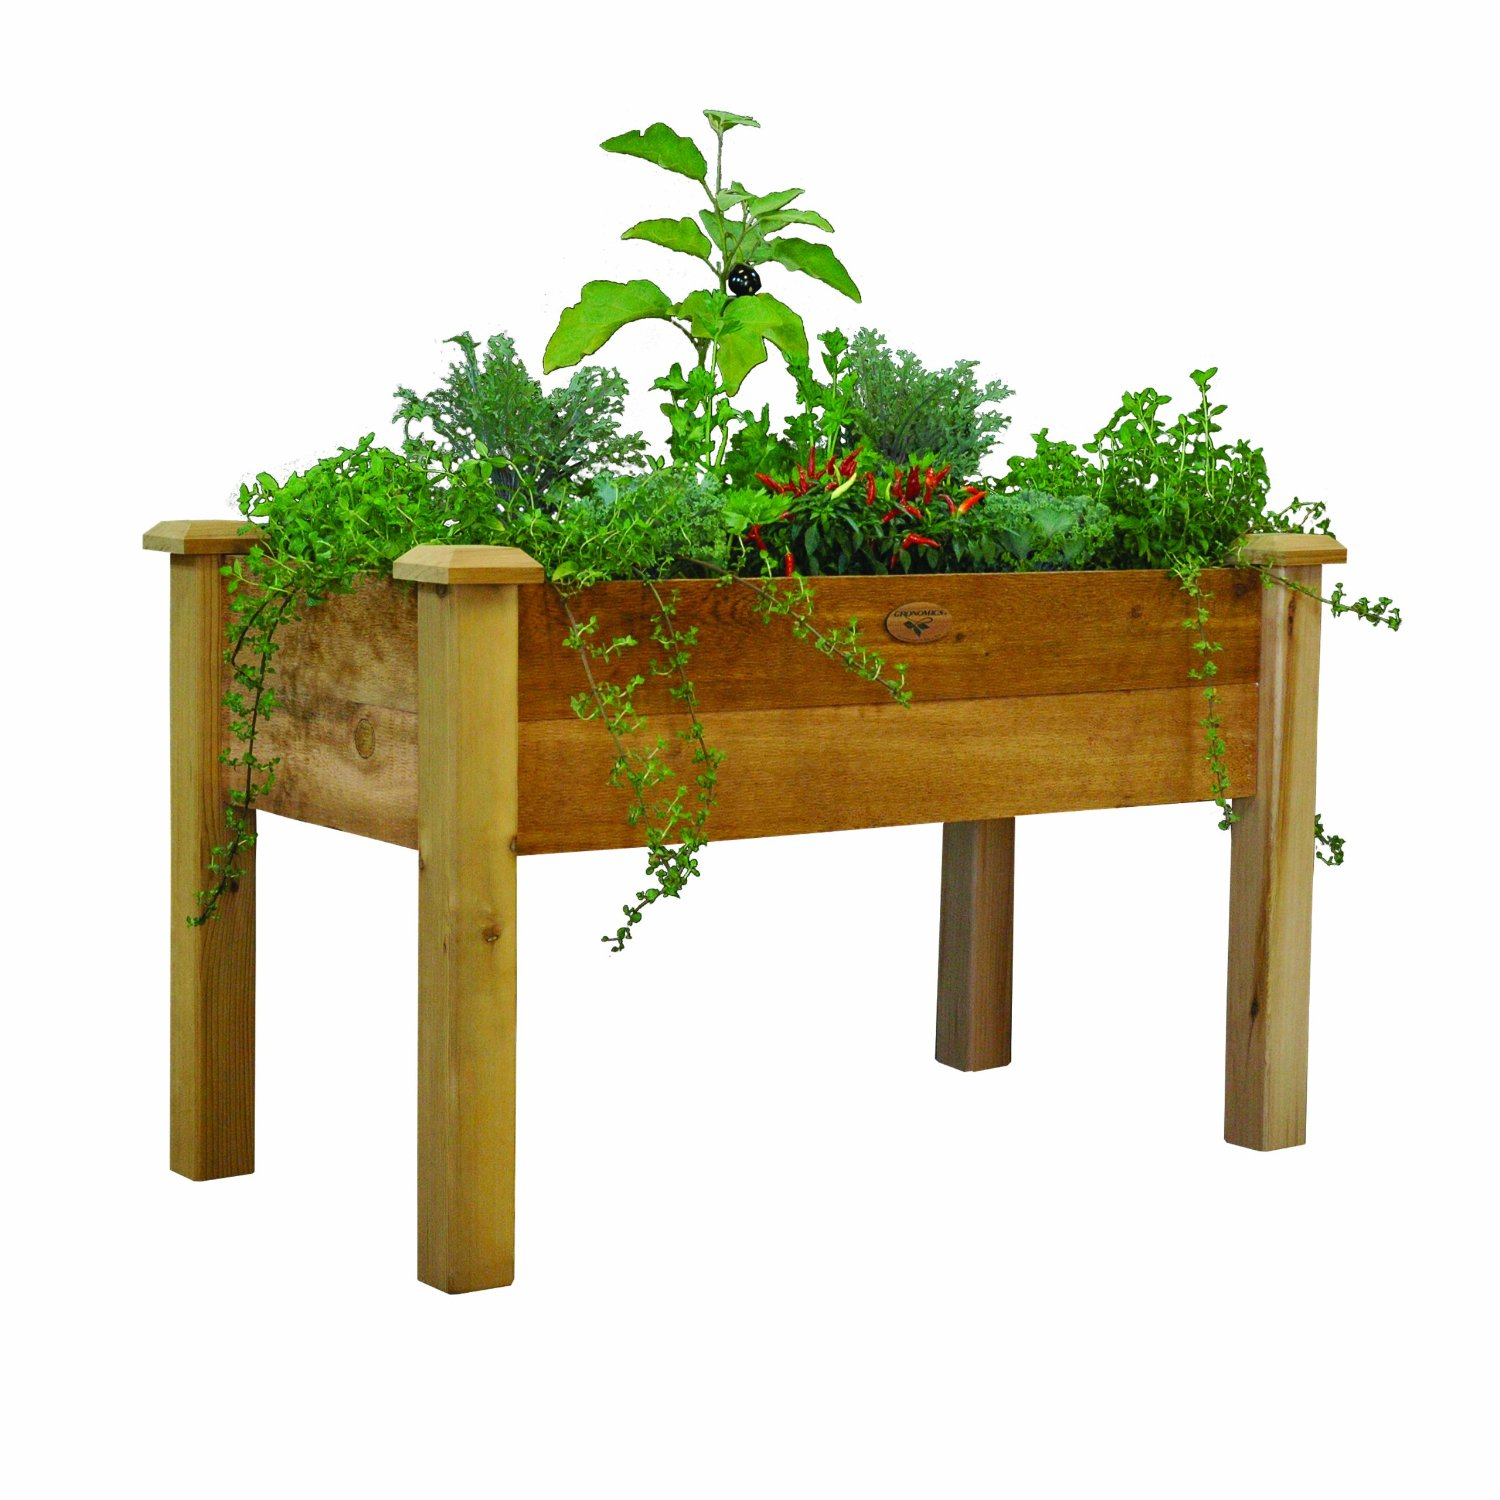 Gronomics REGB 24 Inch By 48 Inch By 30 Inch Rustic Elevated Garden Bed